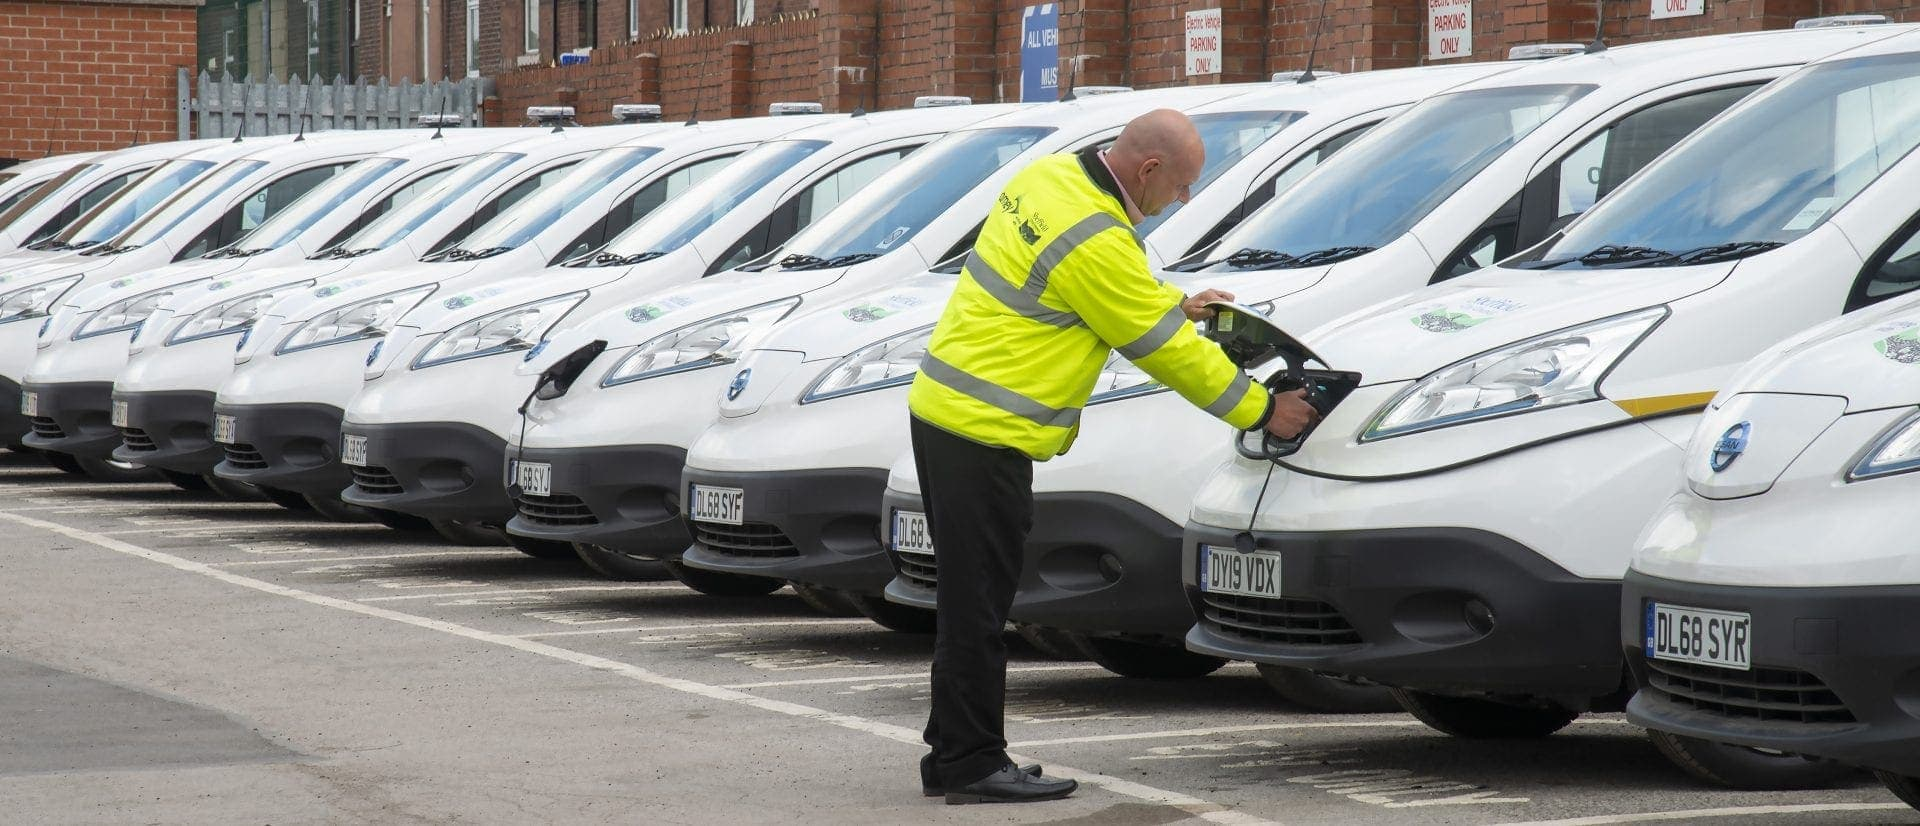 Image of an operator checking a car in an electric car parking